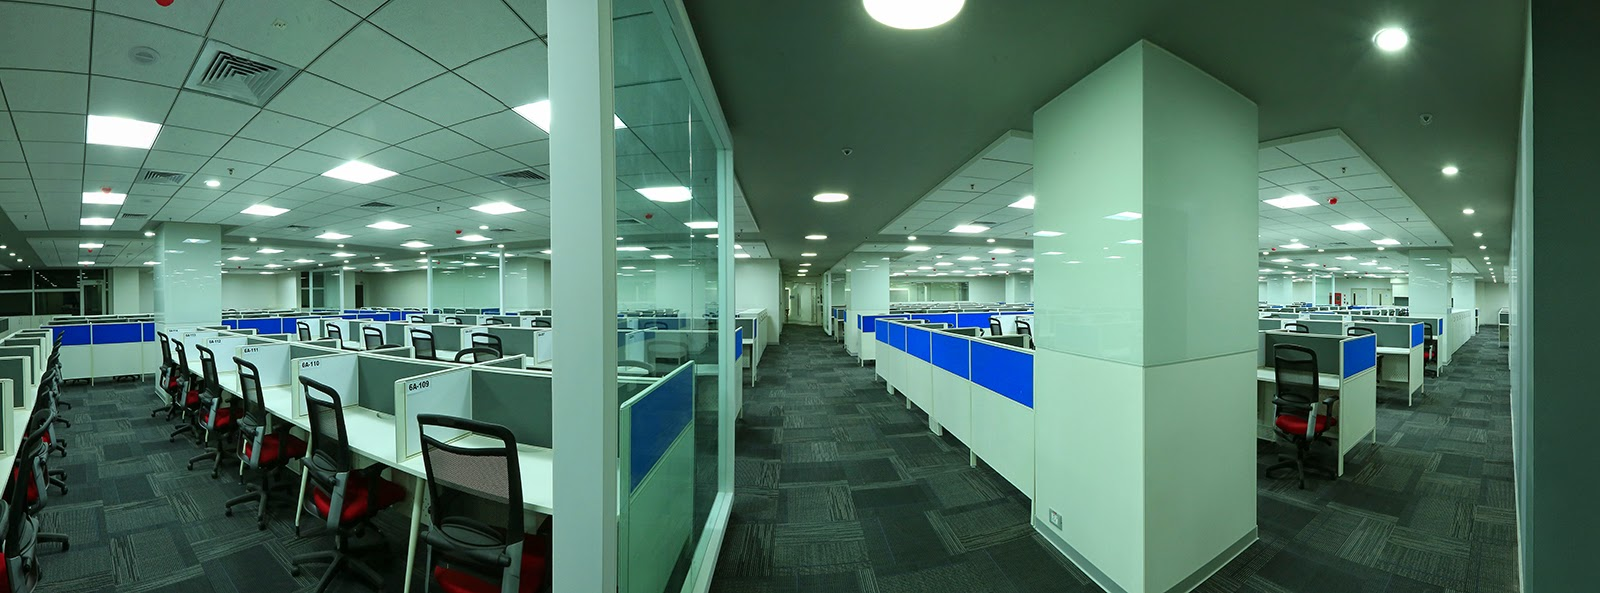 high dynamic range panoramic interior architectural photography